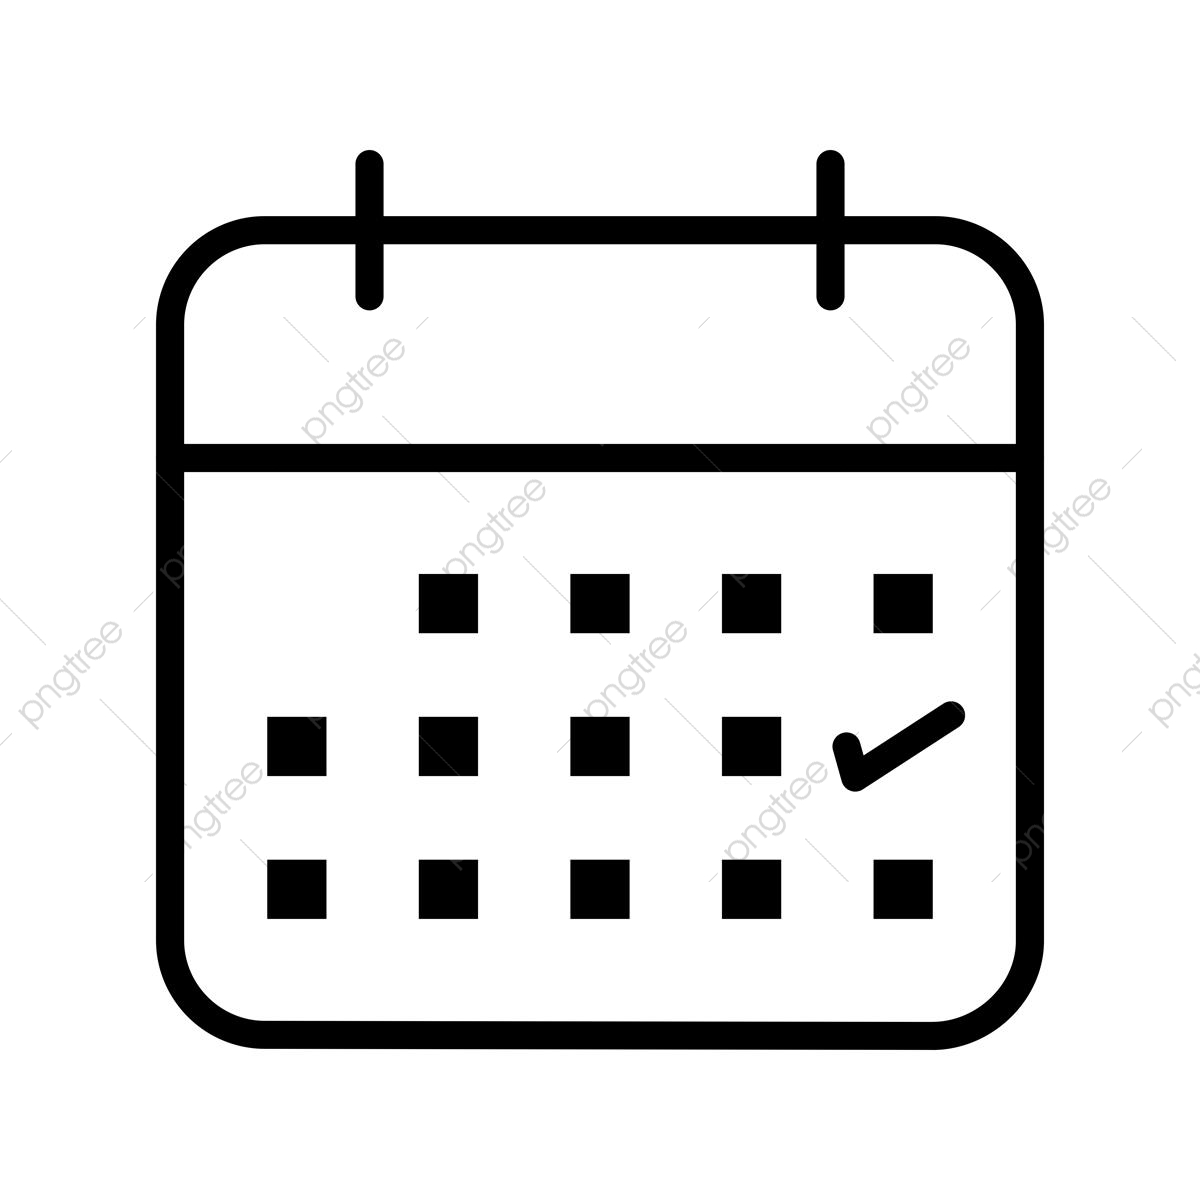 Calendario Business.Business Calendar Banking Line Icon Calendar Icon Business